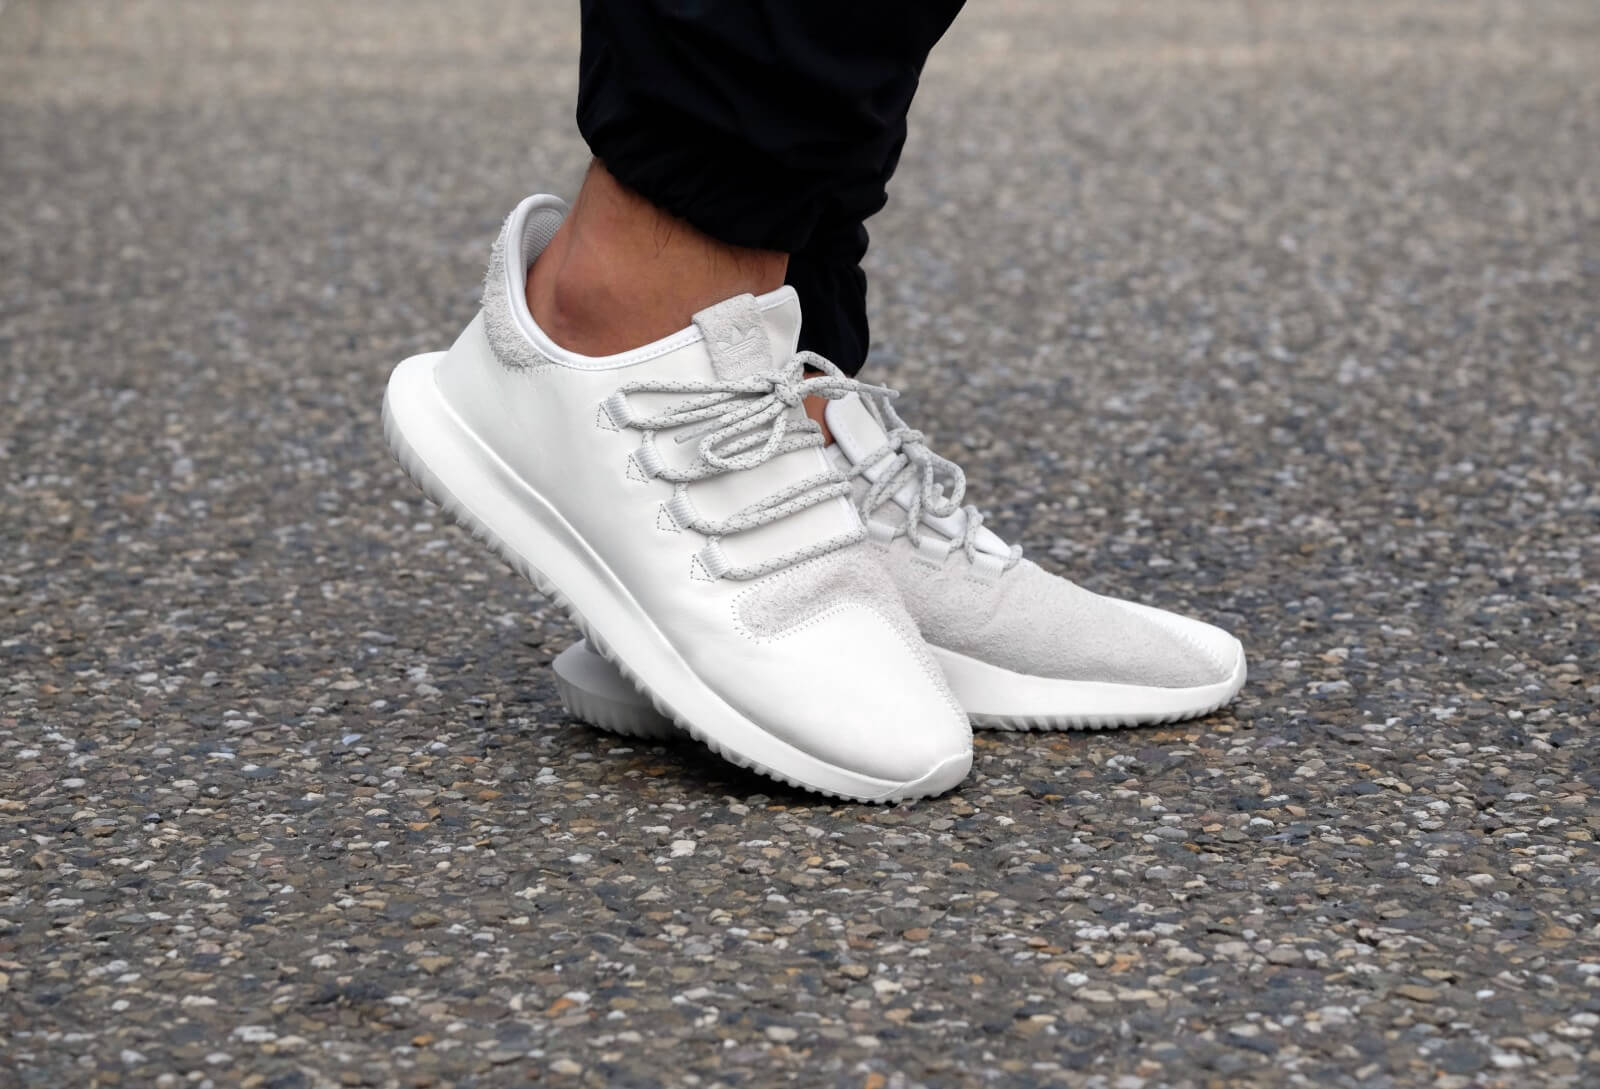 All White Low Rise Shoes